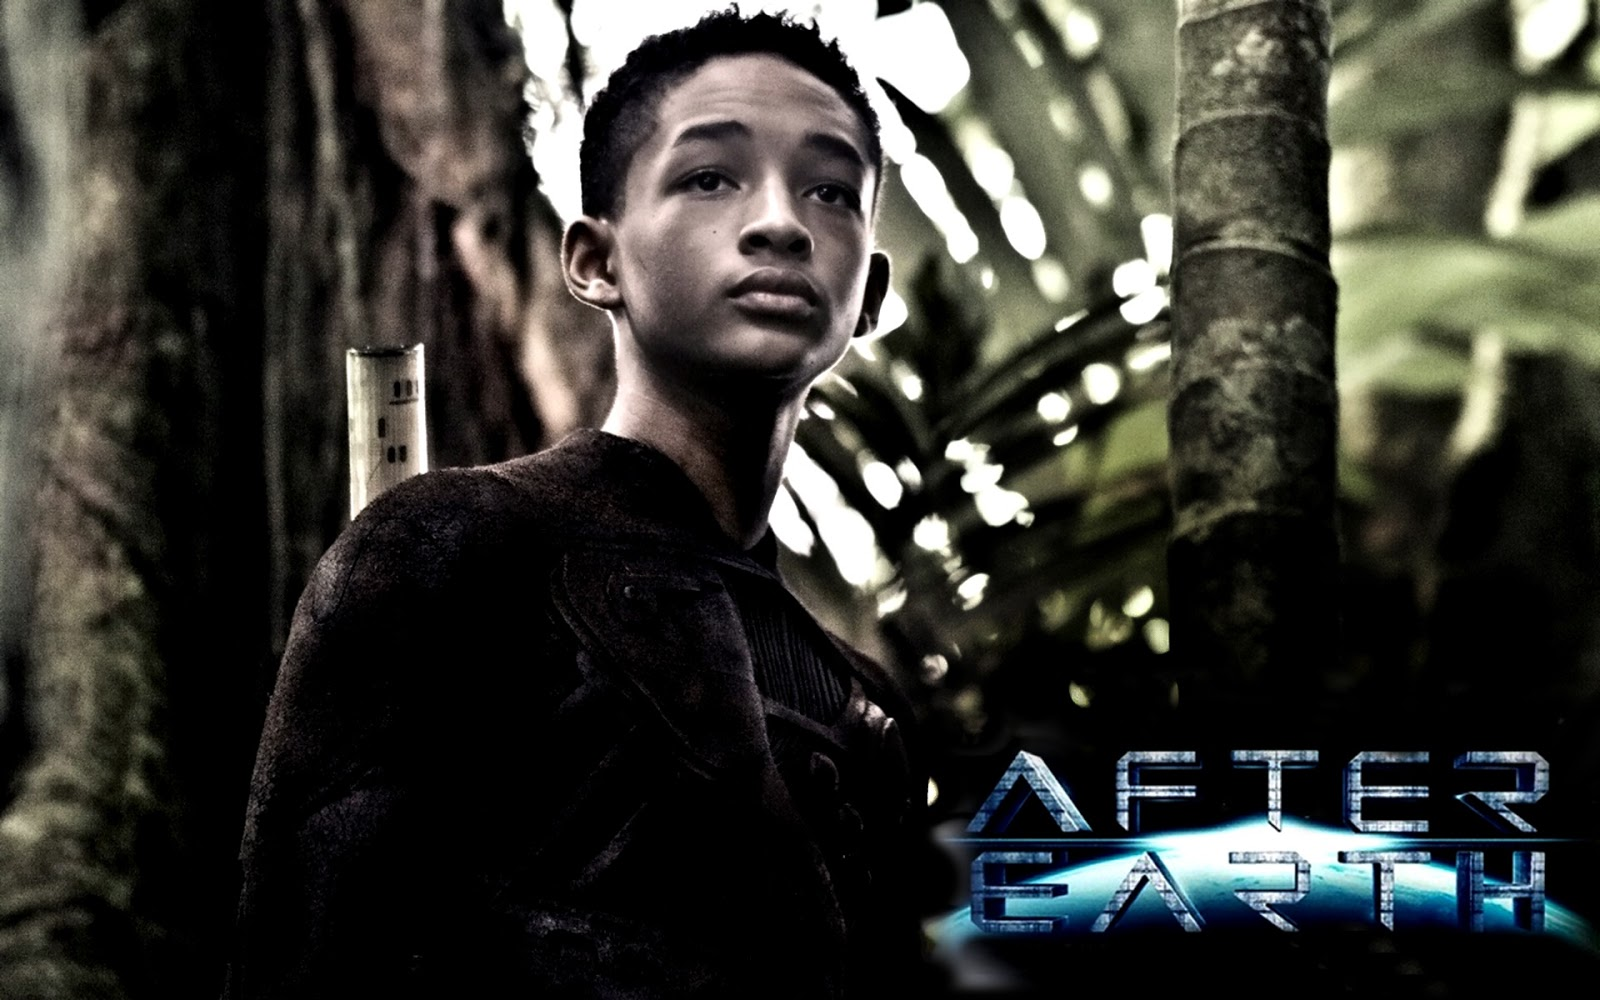 http://2.bp.blogspot.com/-6ywFGIRpnBo/UT2dojYZDJI/AAAAAAAAYN8/sgPNXXC1oG4/s1600/after-earth-2013-movie.jpg